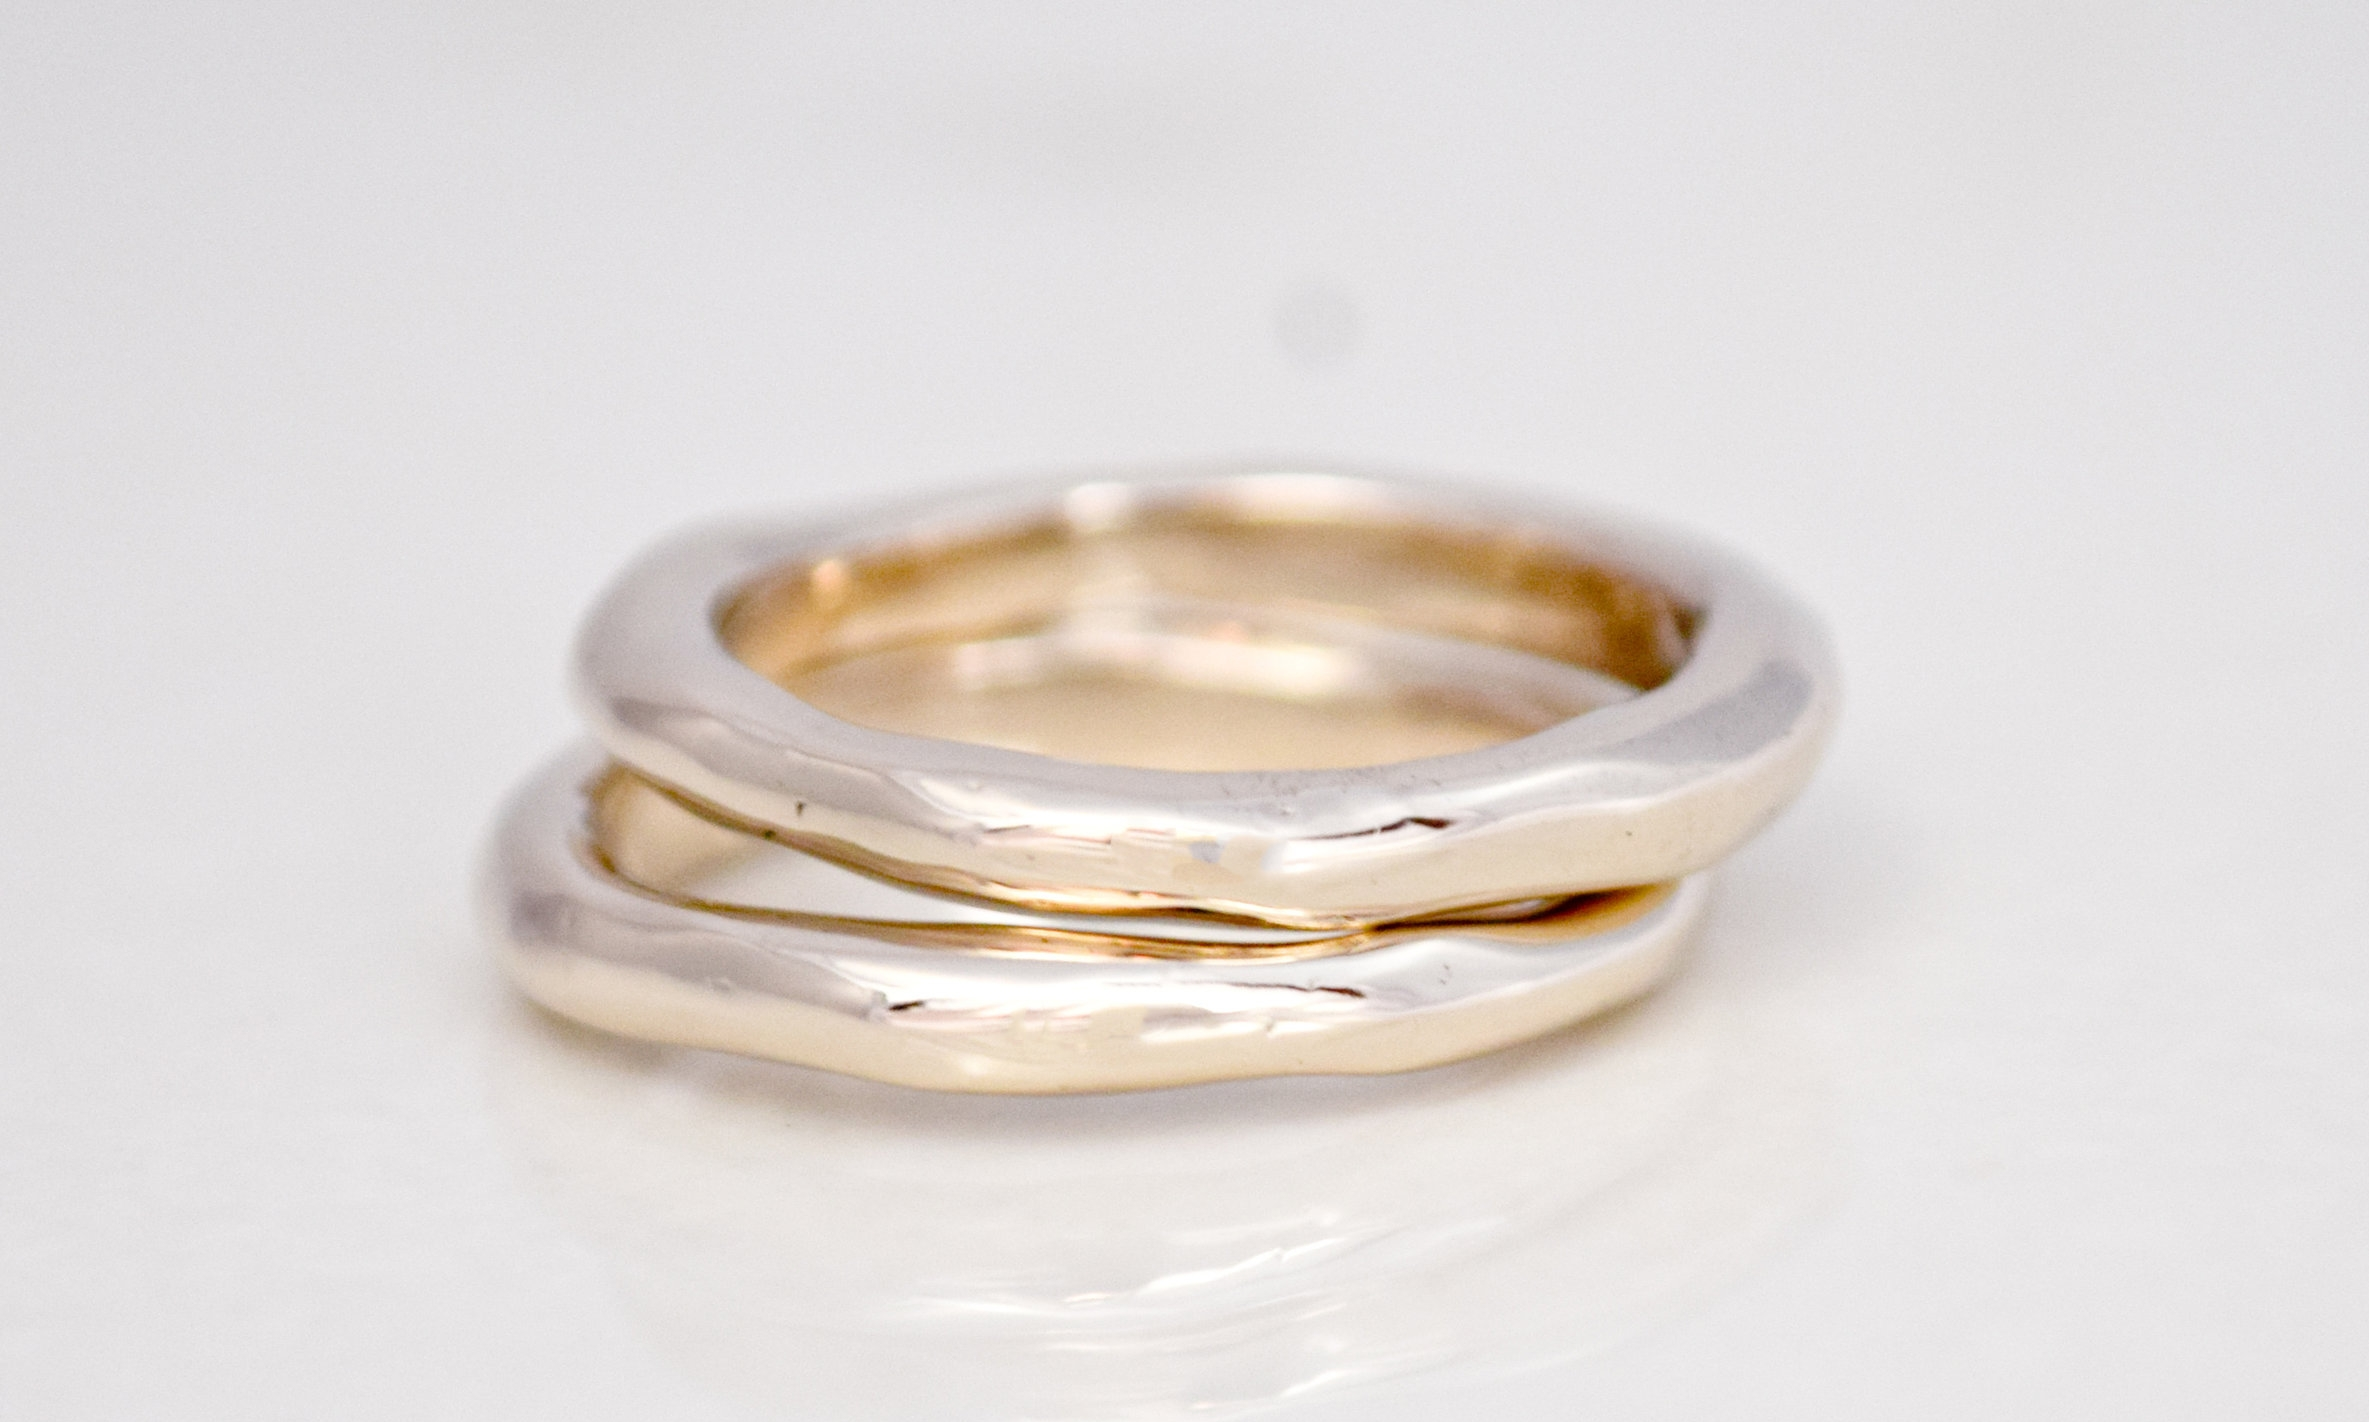 FEDONA RING IN 18K RECYCLED WHITE GOLD. THESE TWO ARE NOW HAPPILY ON HIS AND HER FINGER IN LONDON!